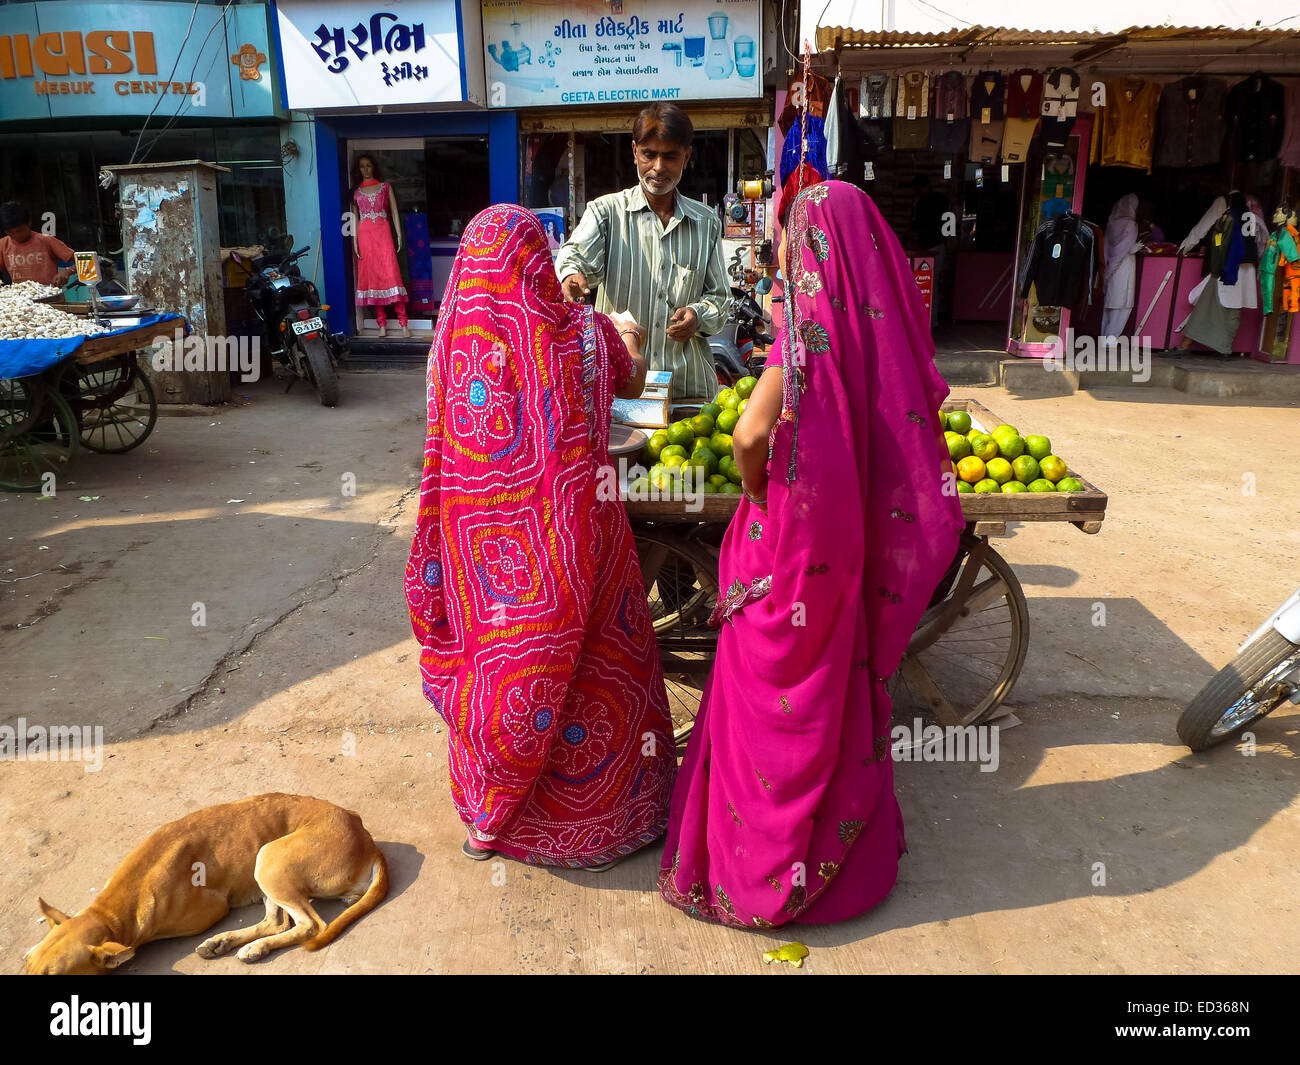 two women in colorful sari at the streets of bhuij gujarat india - Stock Image